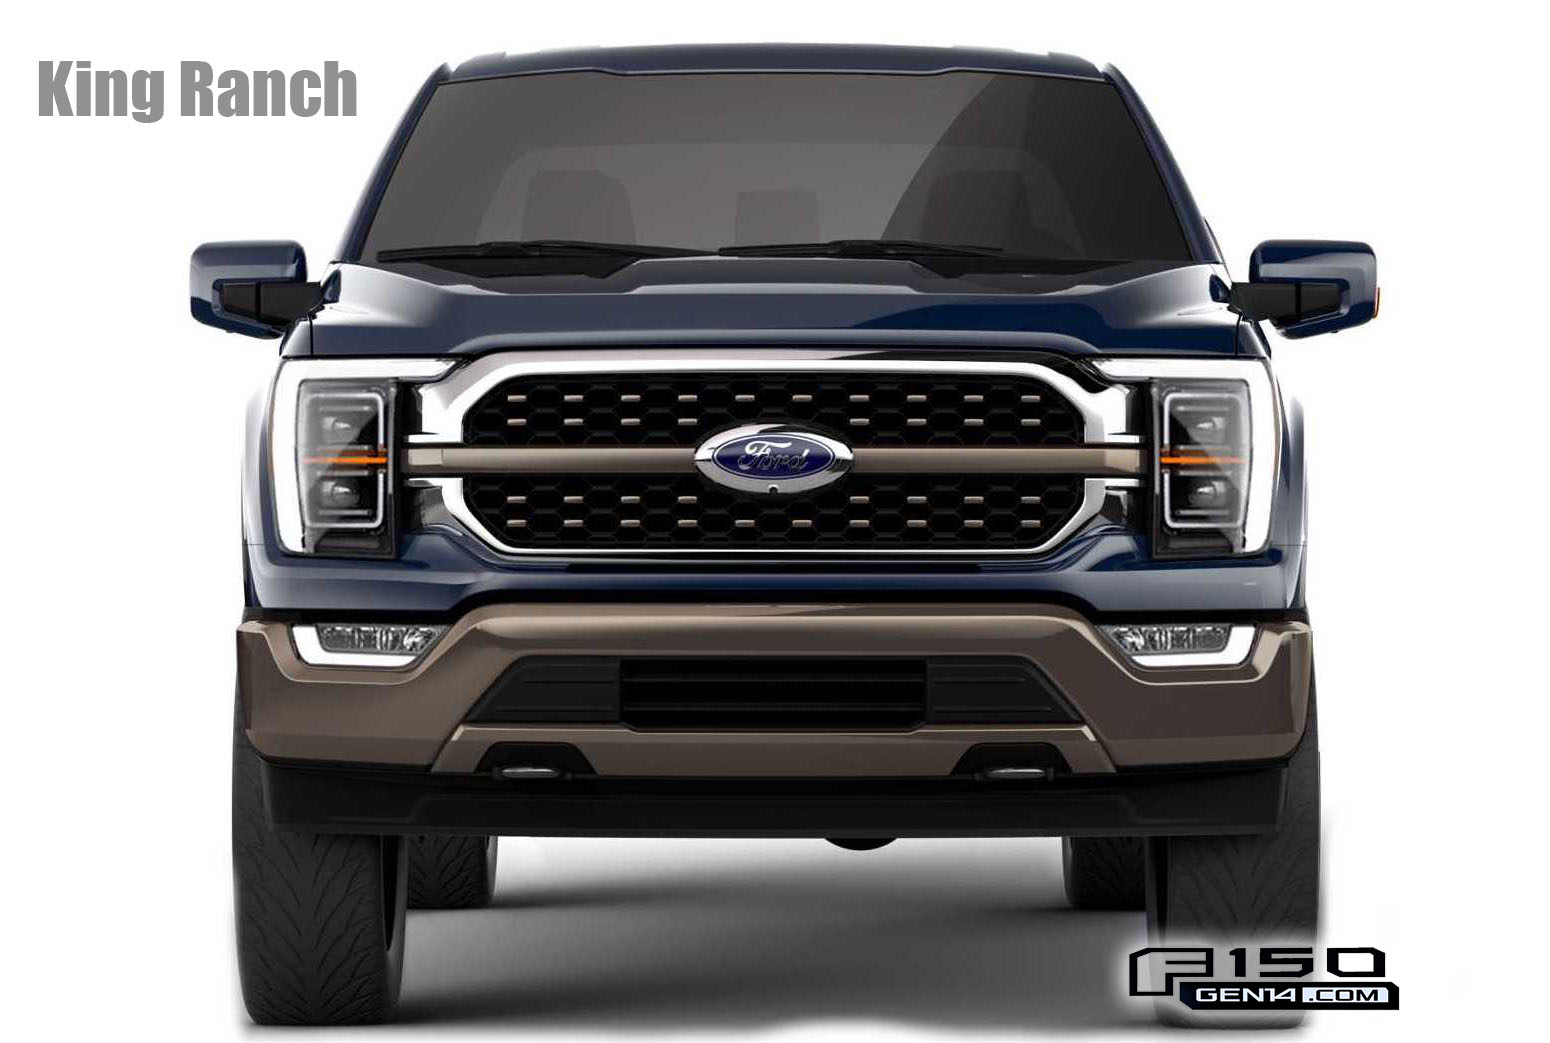 2021-ford-f-150-King-Ranch-grille-designs.jpg